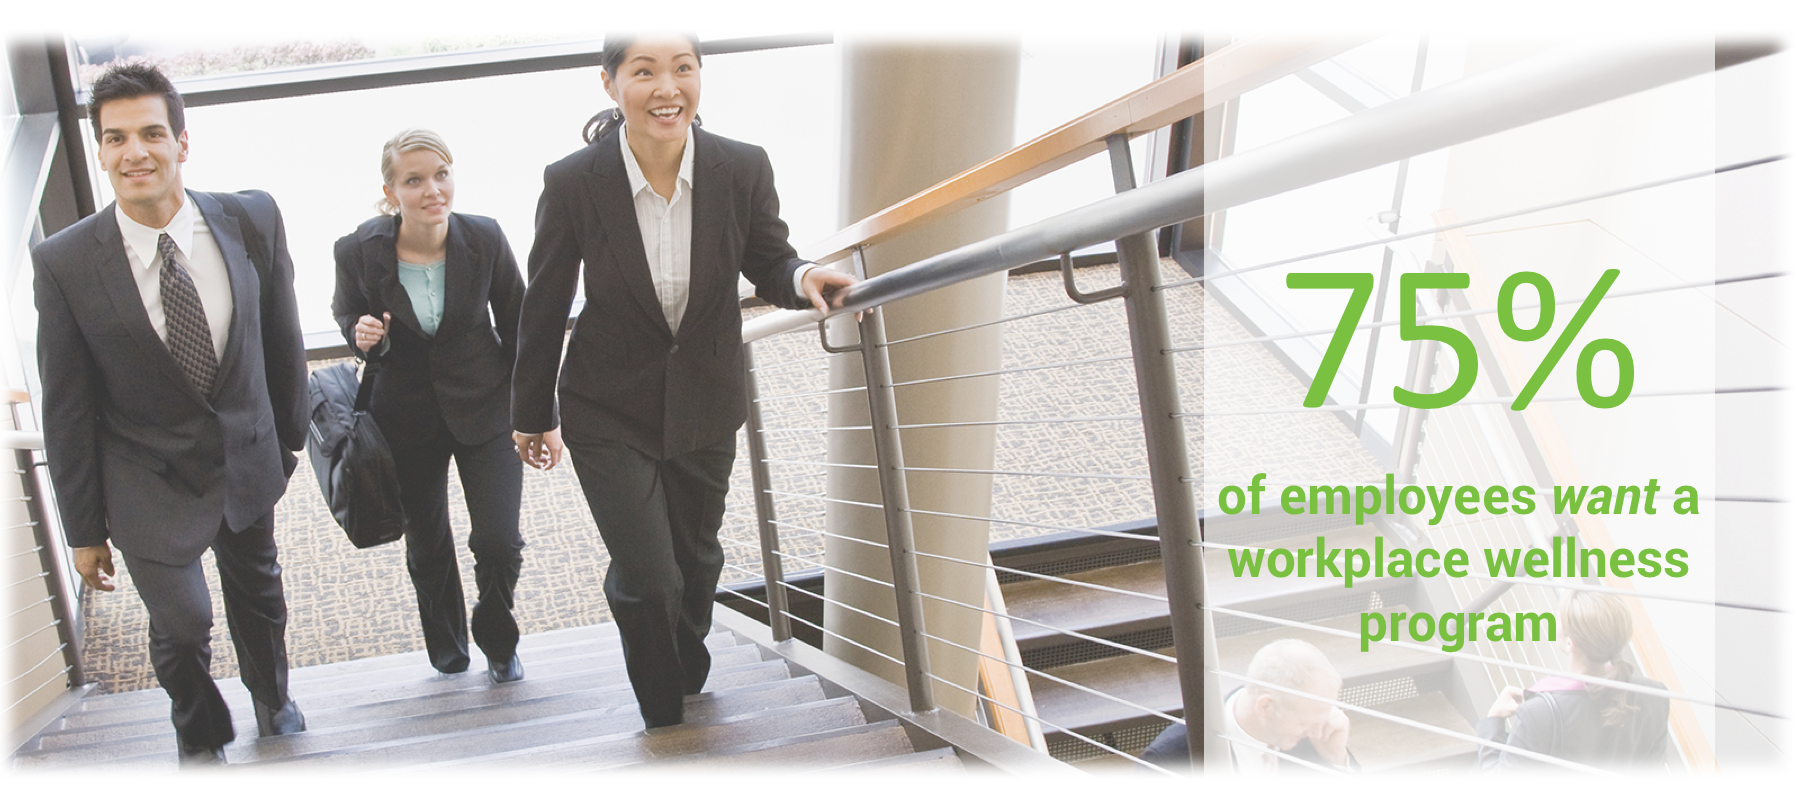 Three business professionals climbing stairs in office building